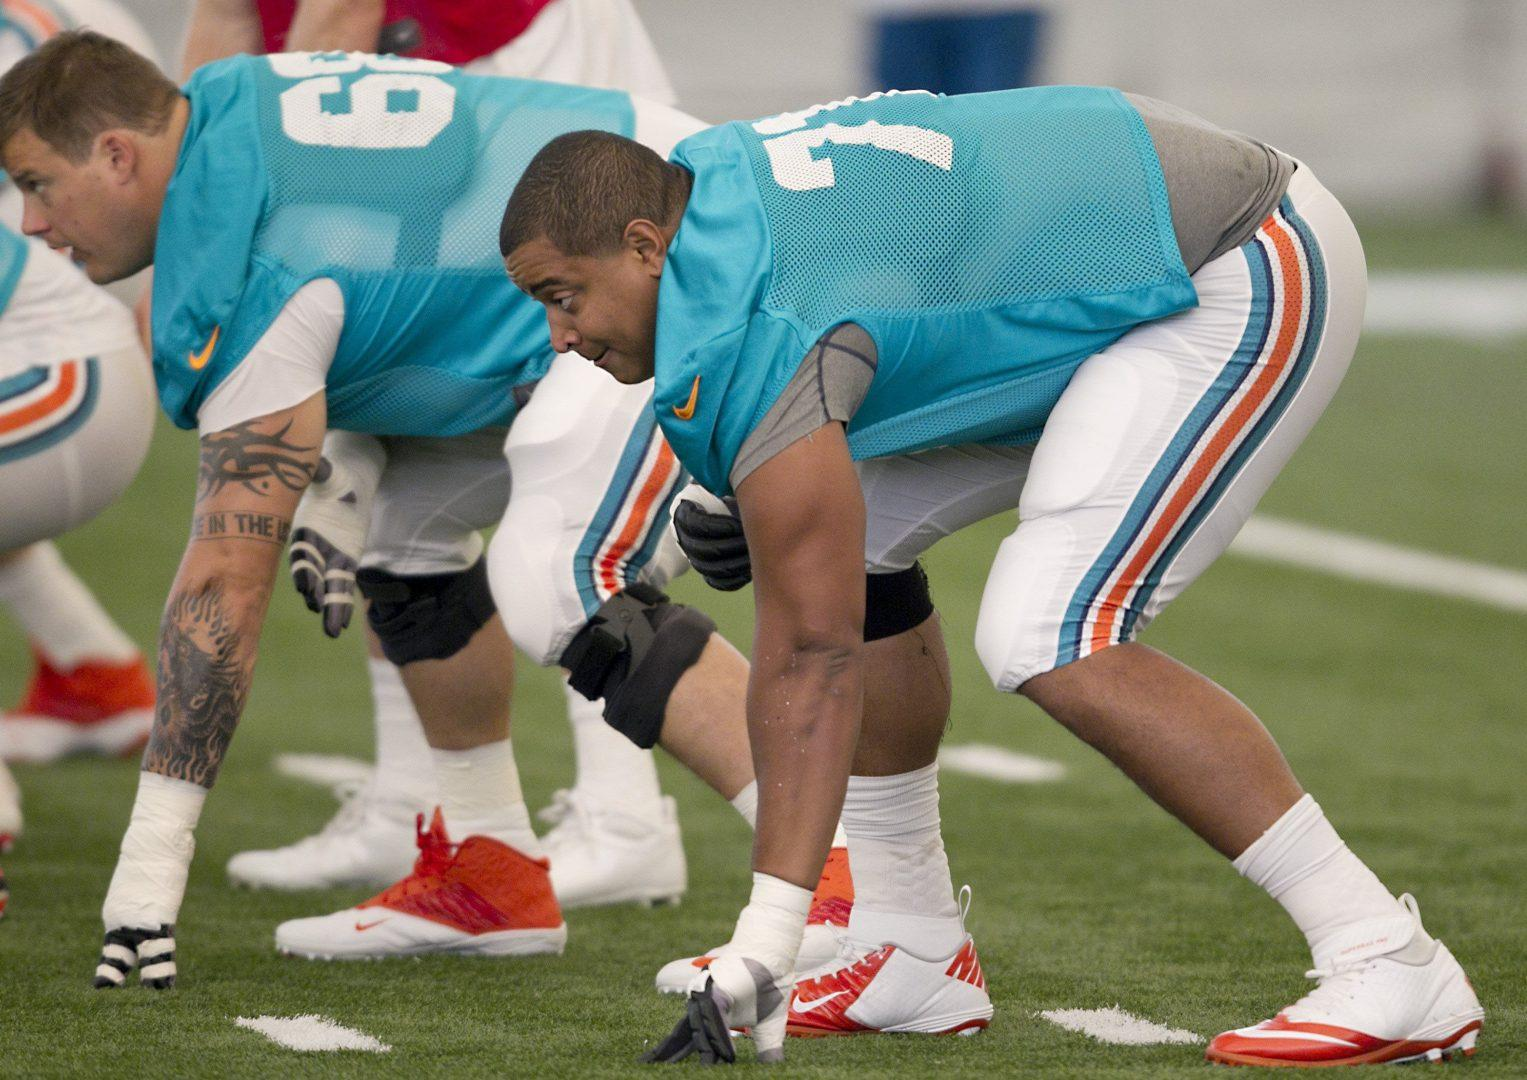 Offensive tackle Jonathan Martin has left the Miami Dolphins due to bullying within the locker room. (Joe Rimkus Jr/Miami Herald via MCT)